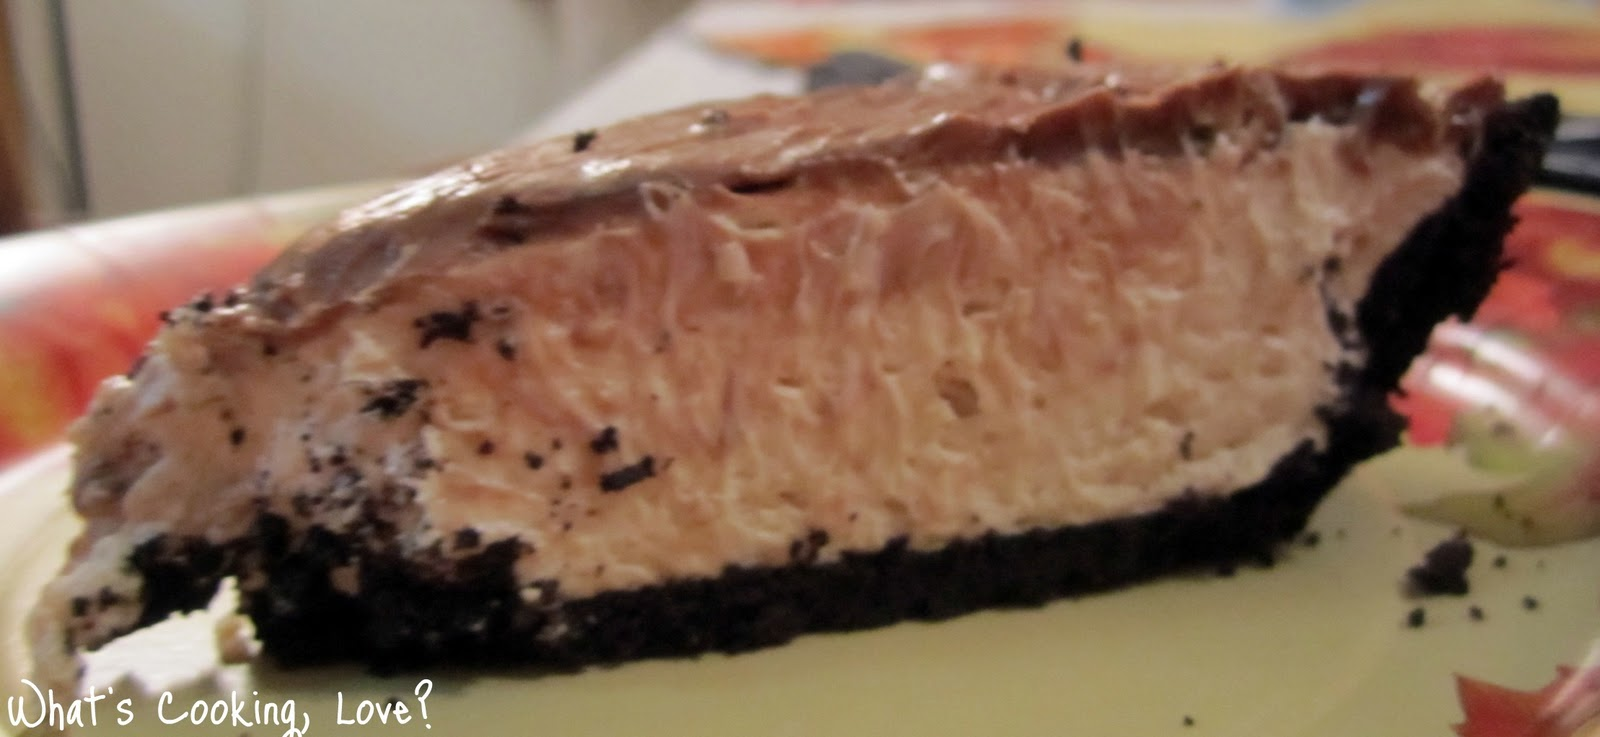 Peanut Butter Pie with Fudge Topping - Whats Cooking Love?